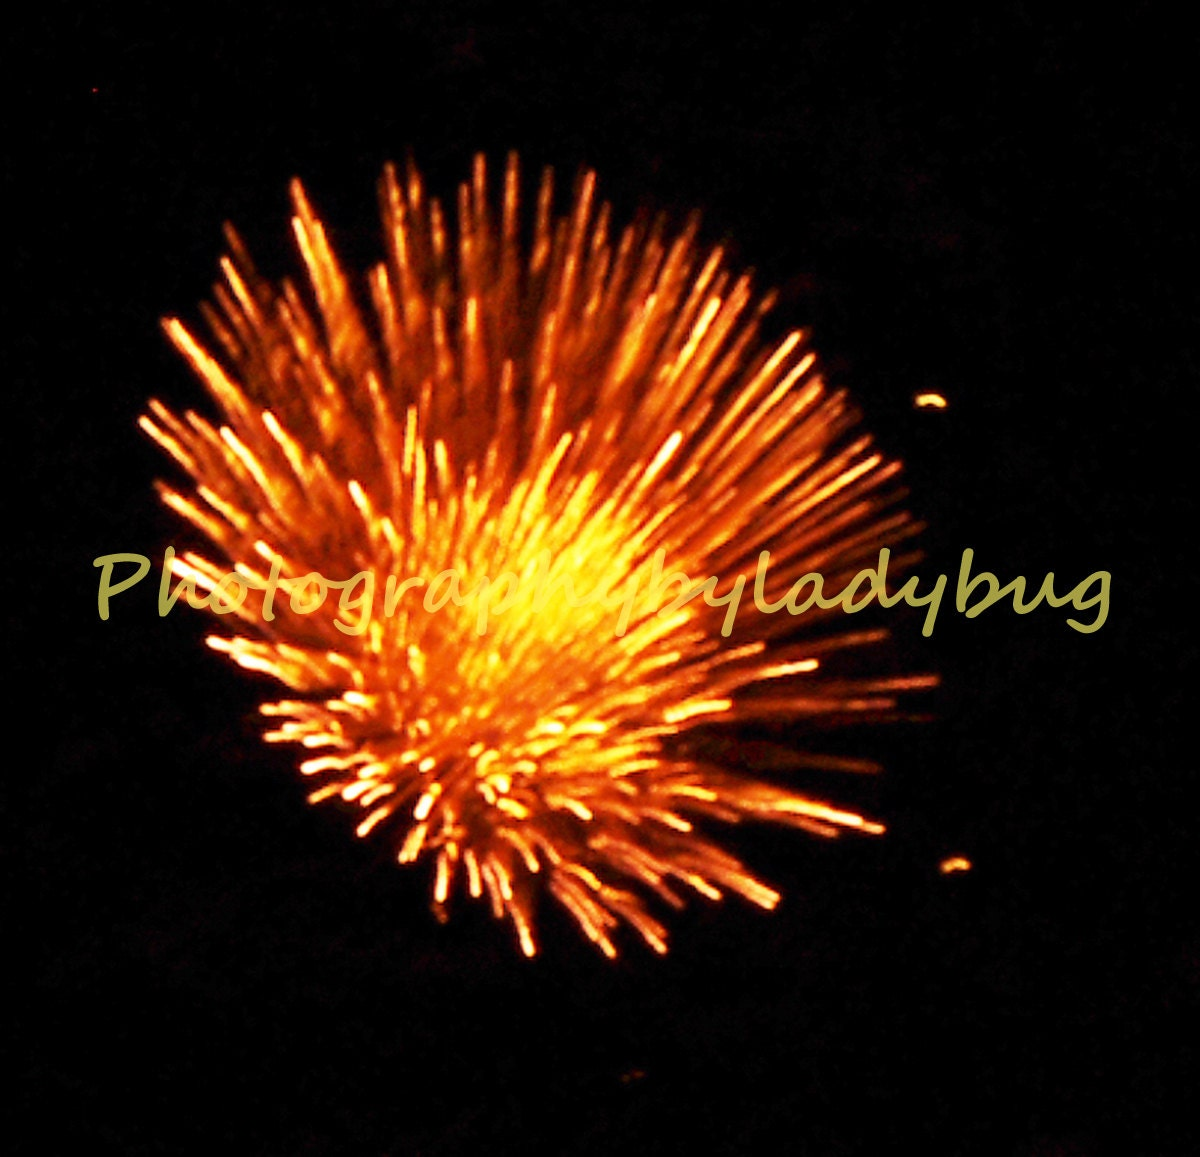 Burst of Energy Firework - 5 x 7 print - PhotographybyLadybug